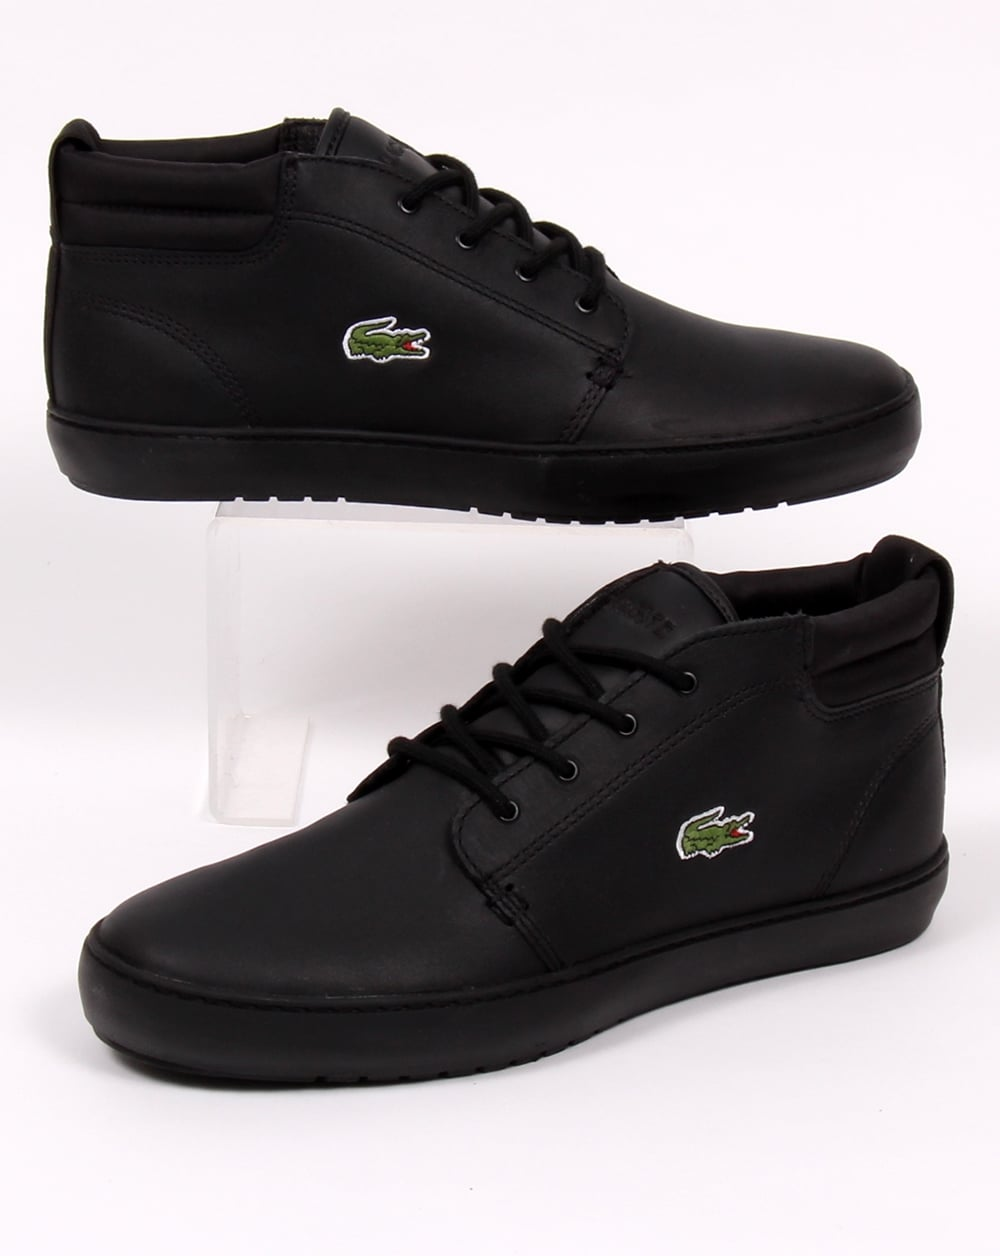 342acecf5 lacoste boots lacoste ampthill terra boots black leather p6814 50088 image